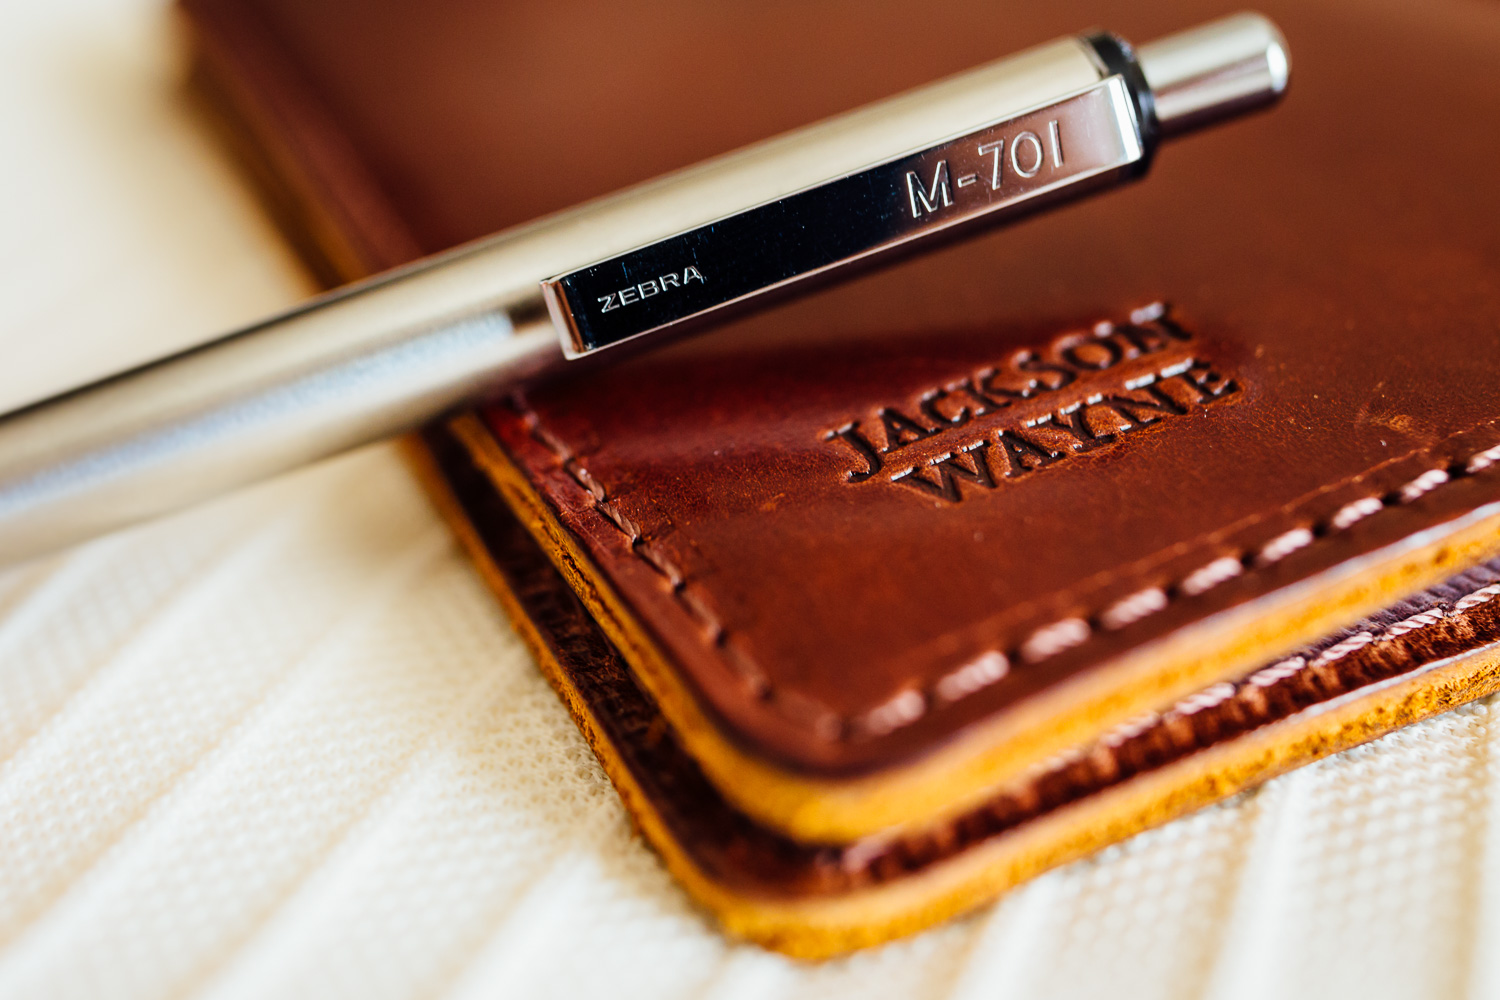 Notebook-Product-Pencil-Leather-Durazo-Photography-Project-Travel.jpg